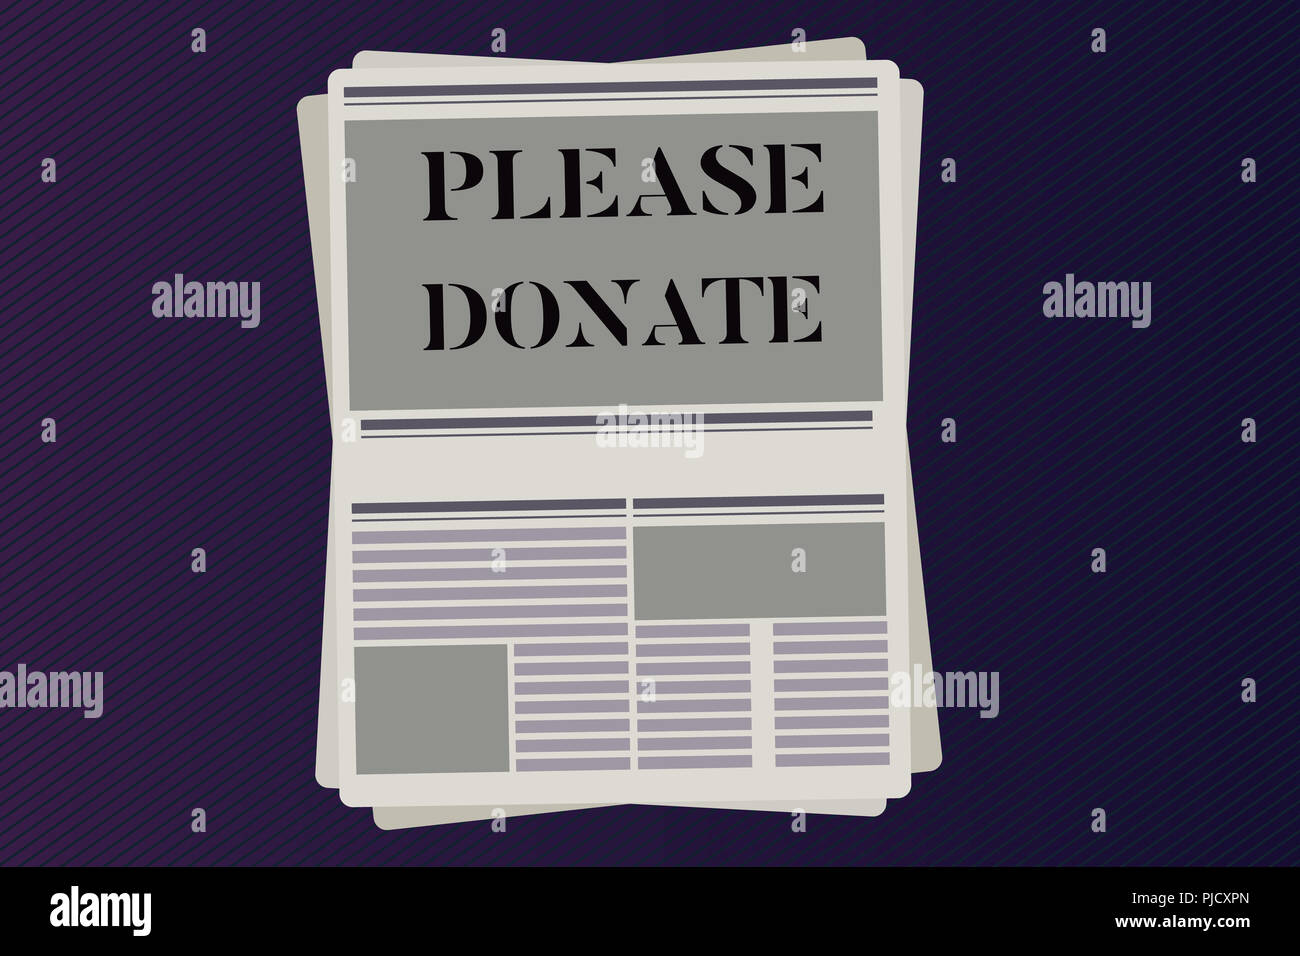 Word writing text Please Donate. Business concept for Supply Furnish Hand out Contribute Grant Aid to Charity. - Stock Image